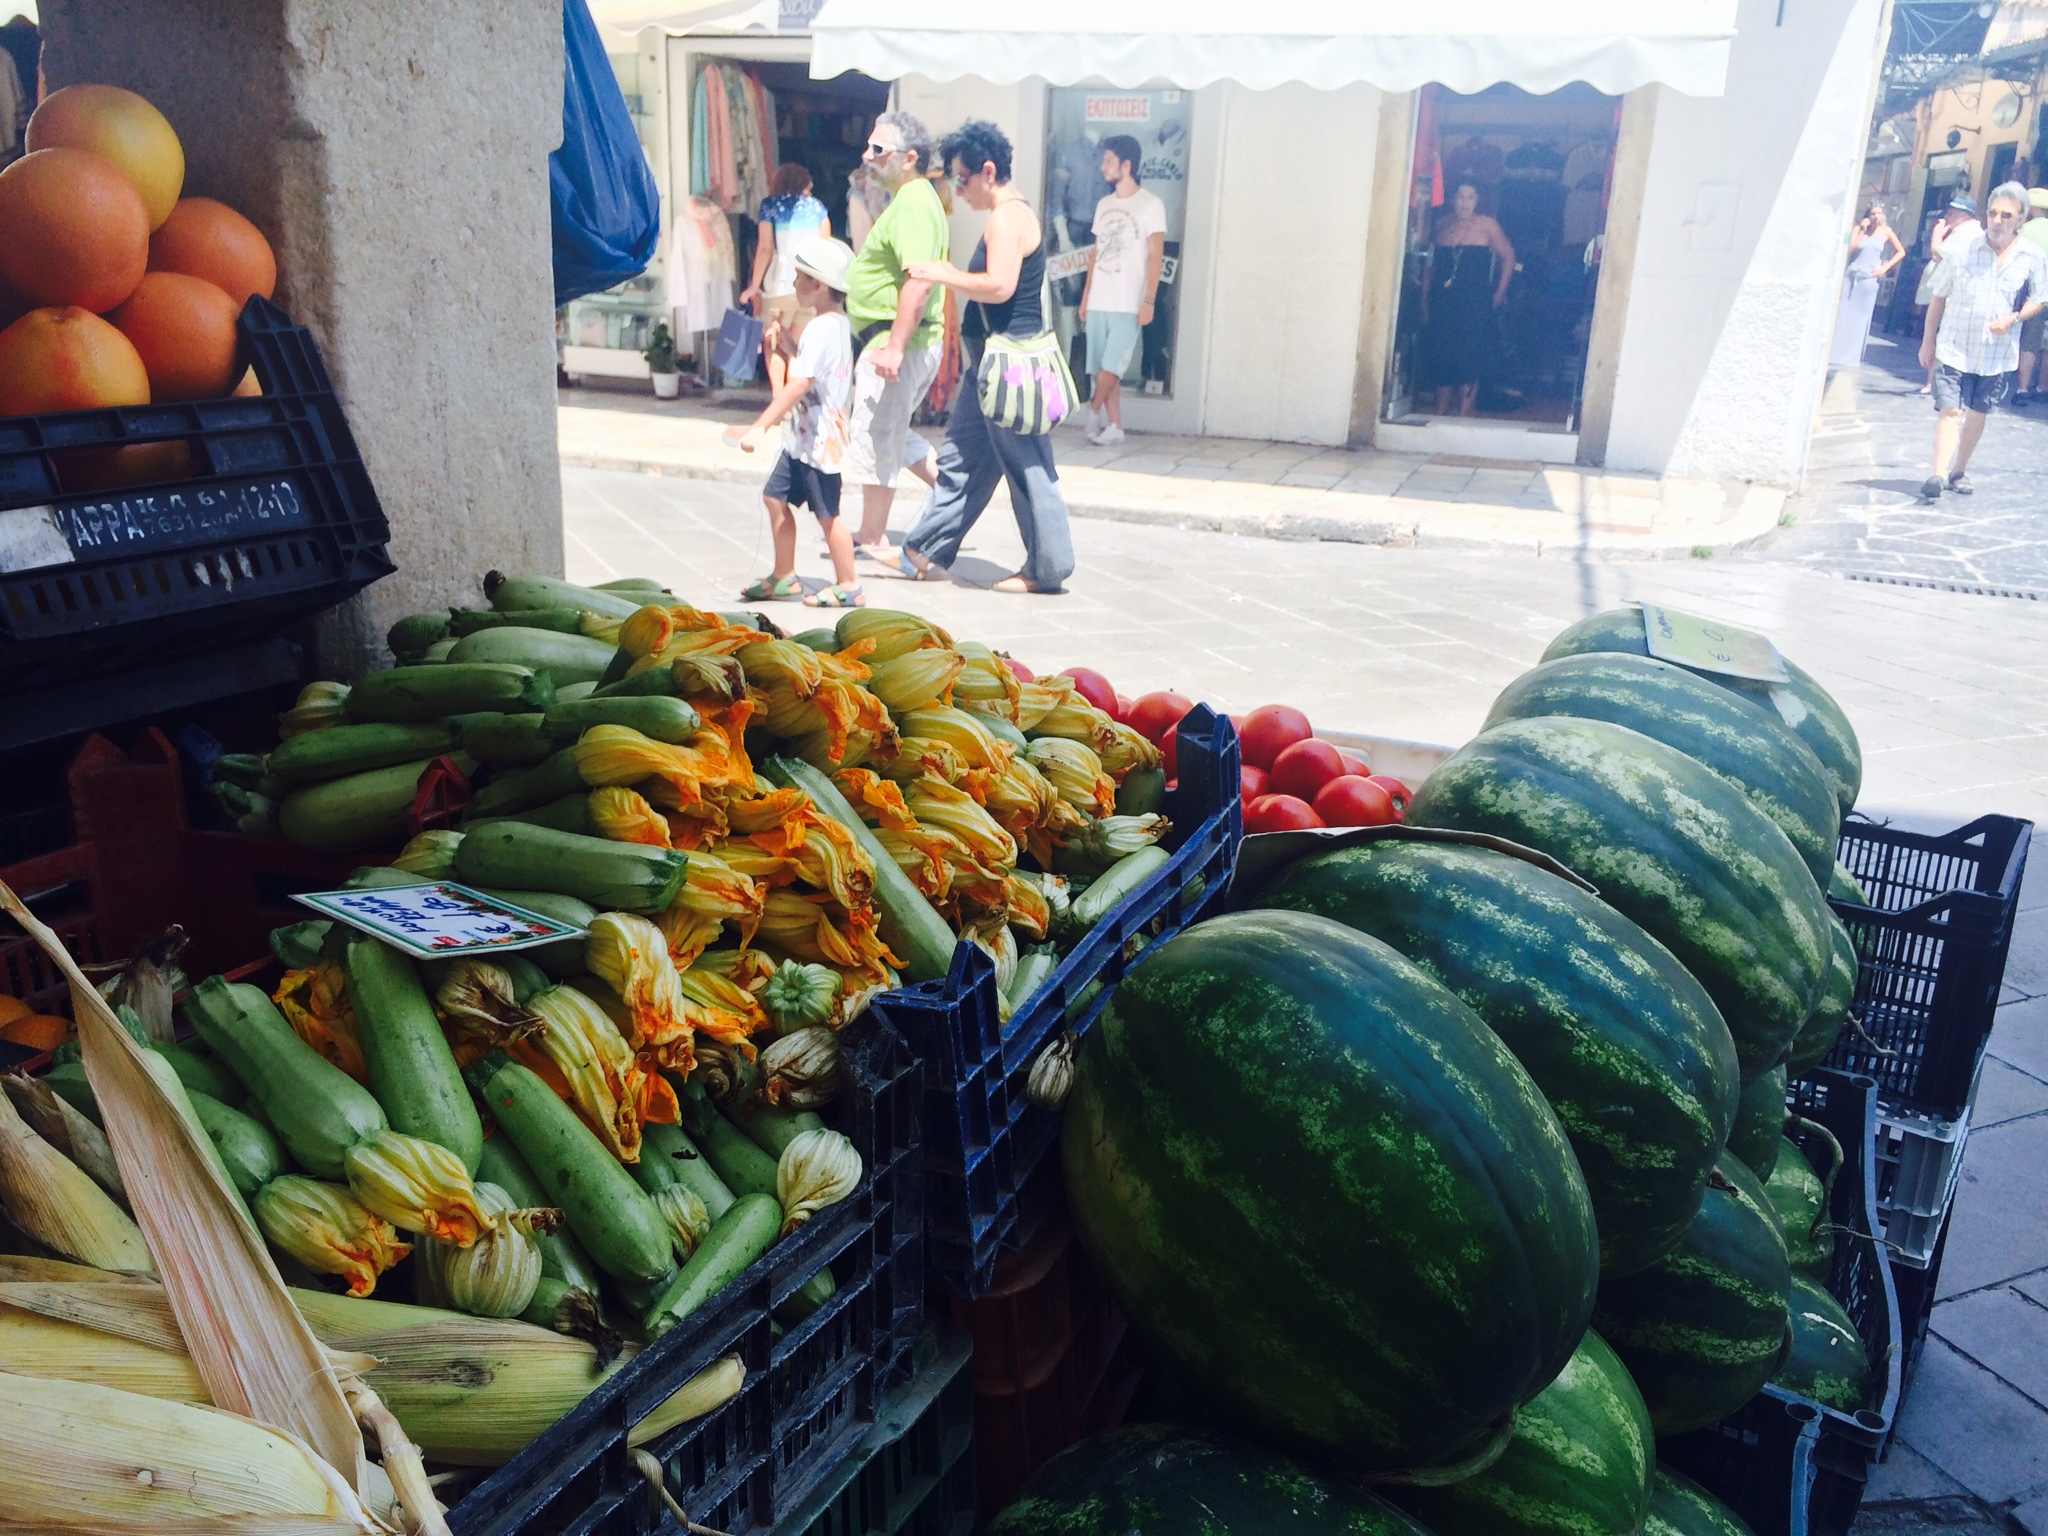 They have the best watermelon in the Greece. It gave me a serious stomach problem, but it was worth it.